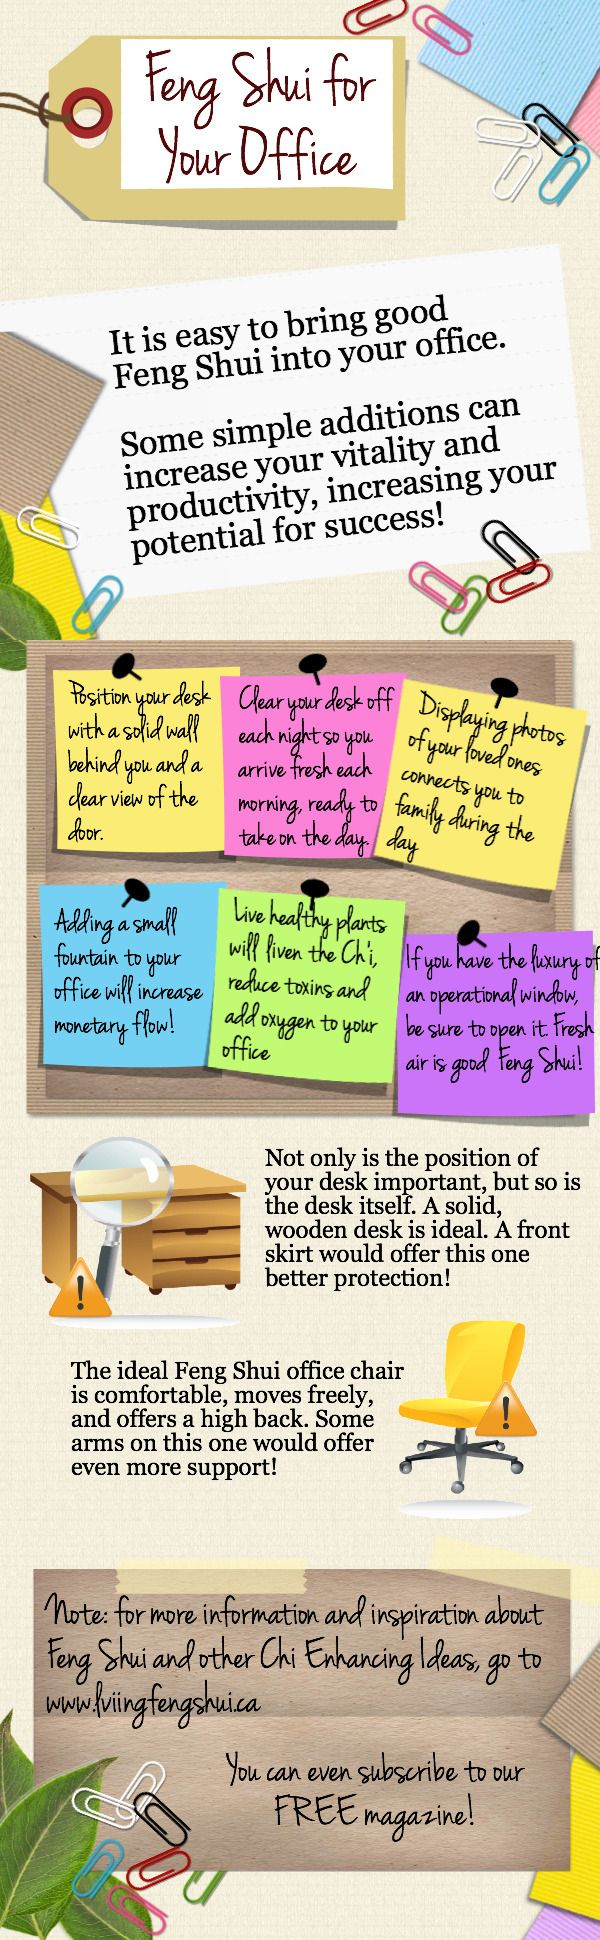 office feng shui tips. Some Quick Feng Shui Tips For The Office Choose How You Respond To Life. Visit Waverider @ Http://www.waveridermp3.com #infographic G